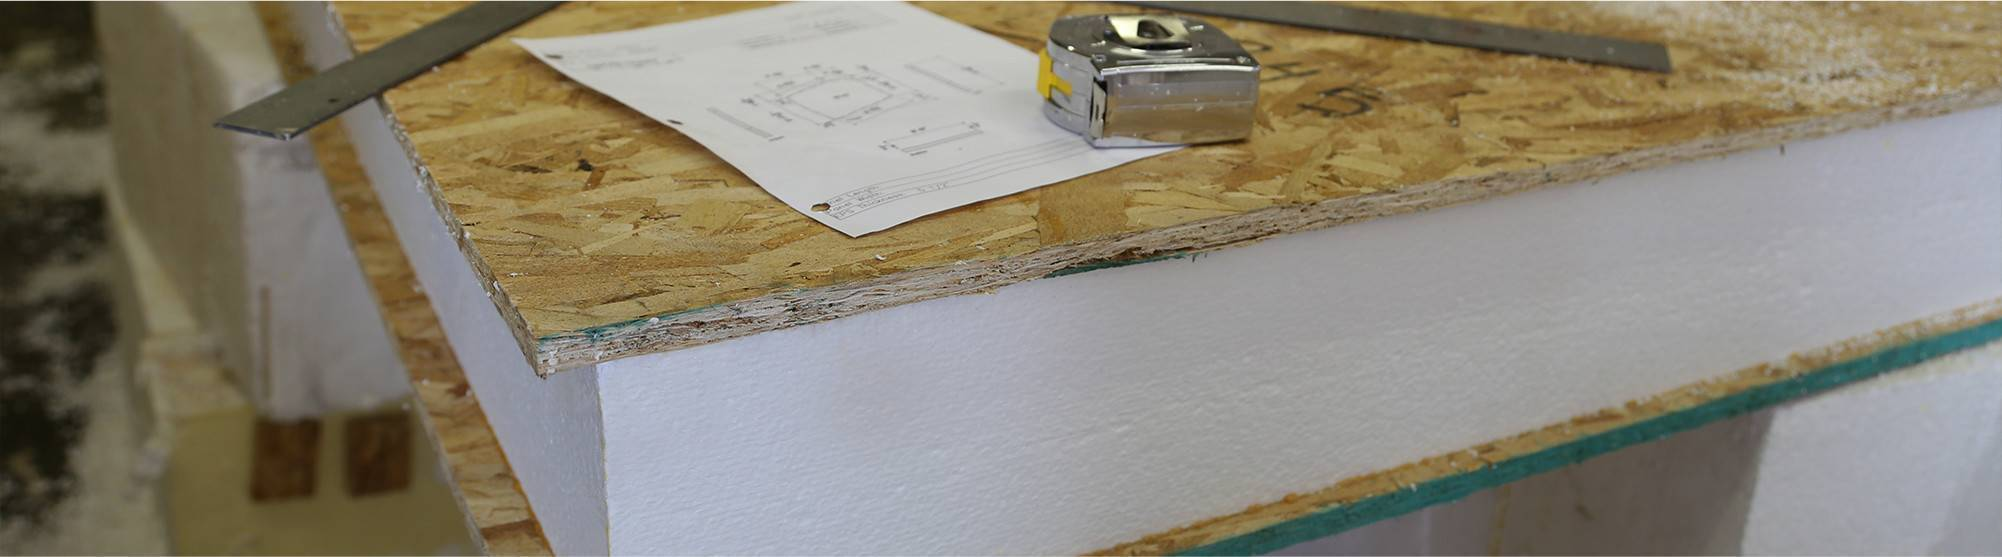 SIPS Panels | Structural Insulated Panels | FischerSIPS